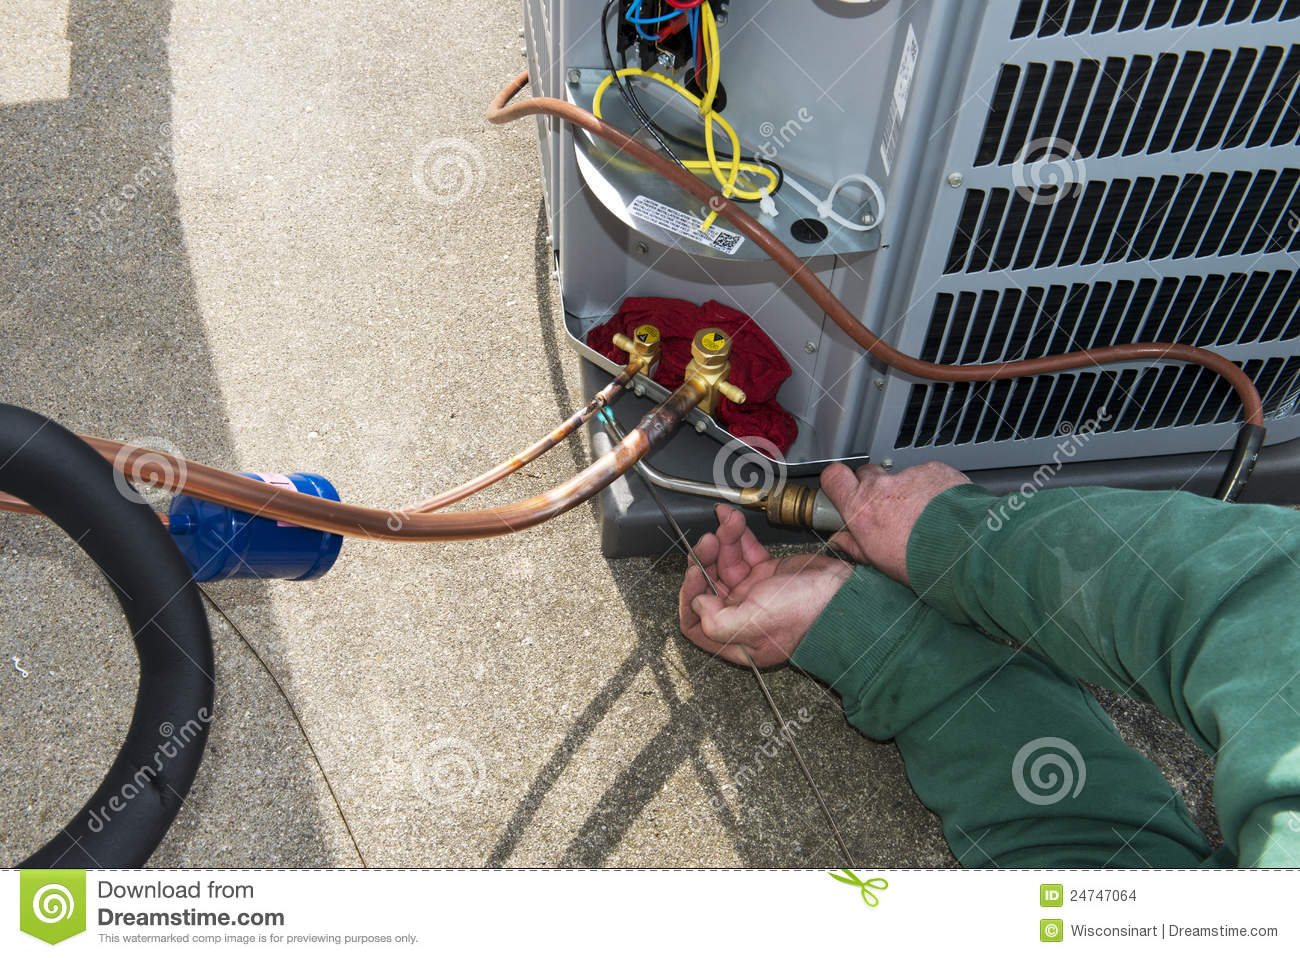 hight resolution of welding install central air conditioner ac unit stock photo image an ac service technician is